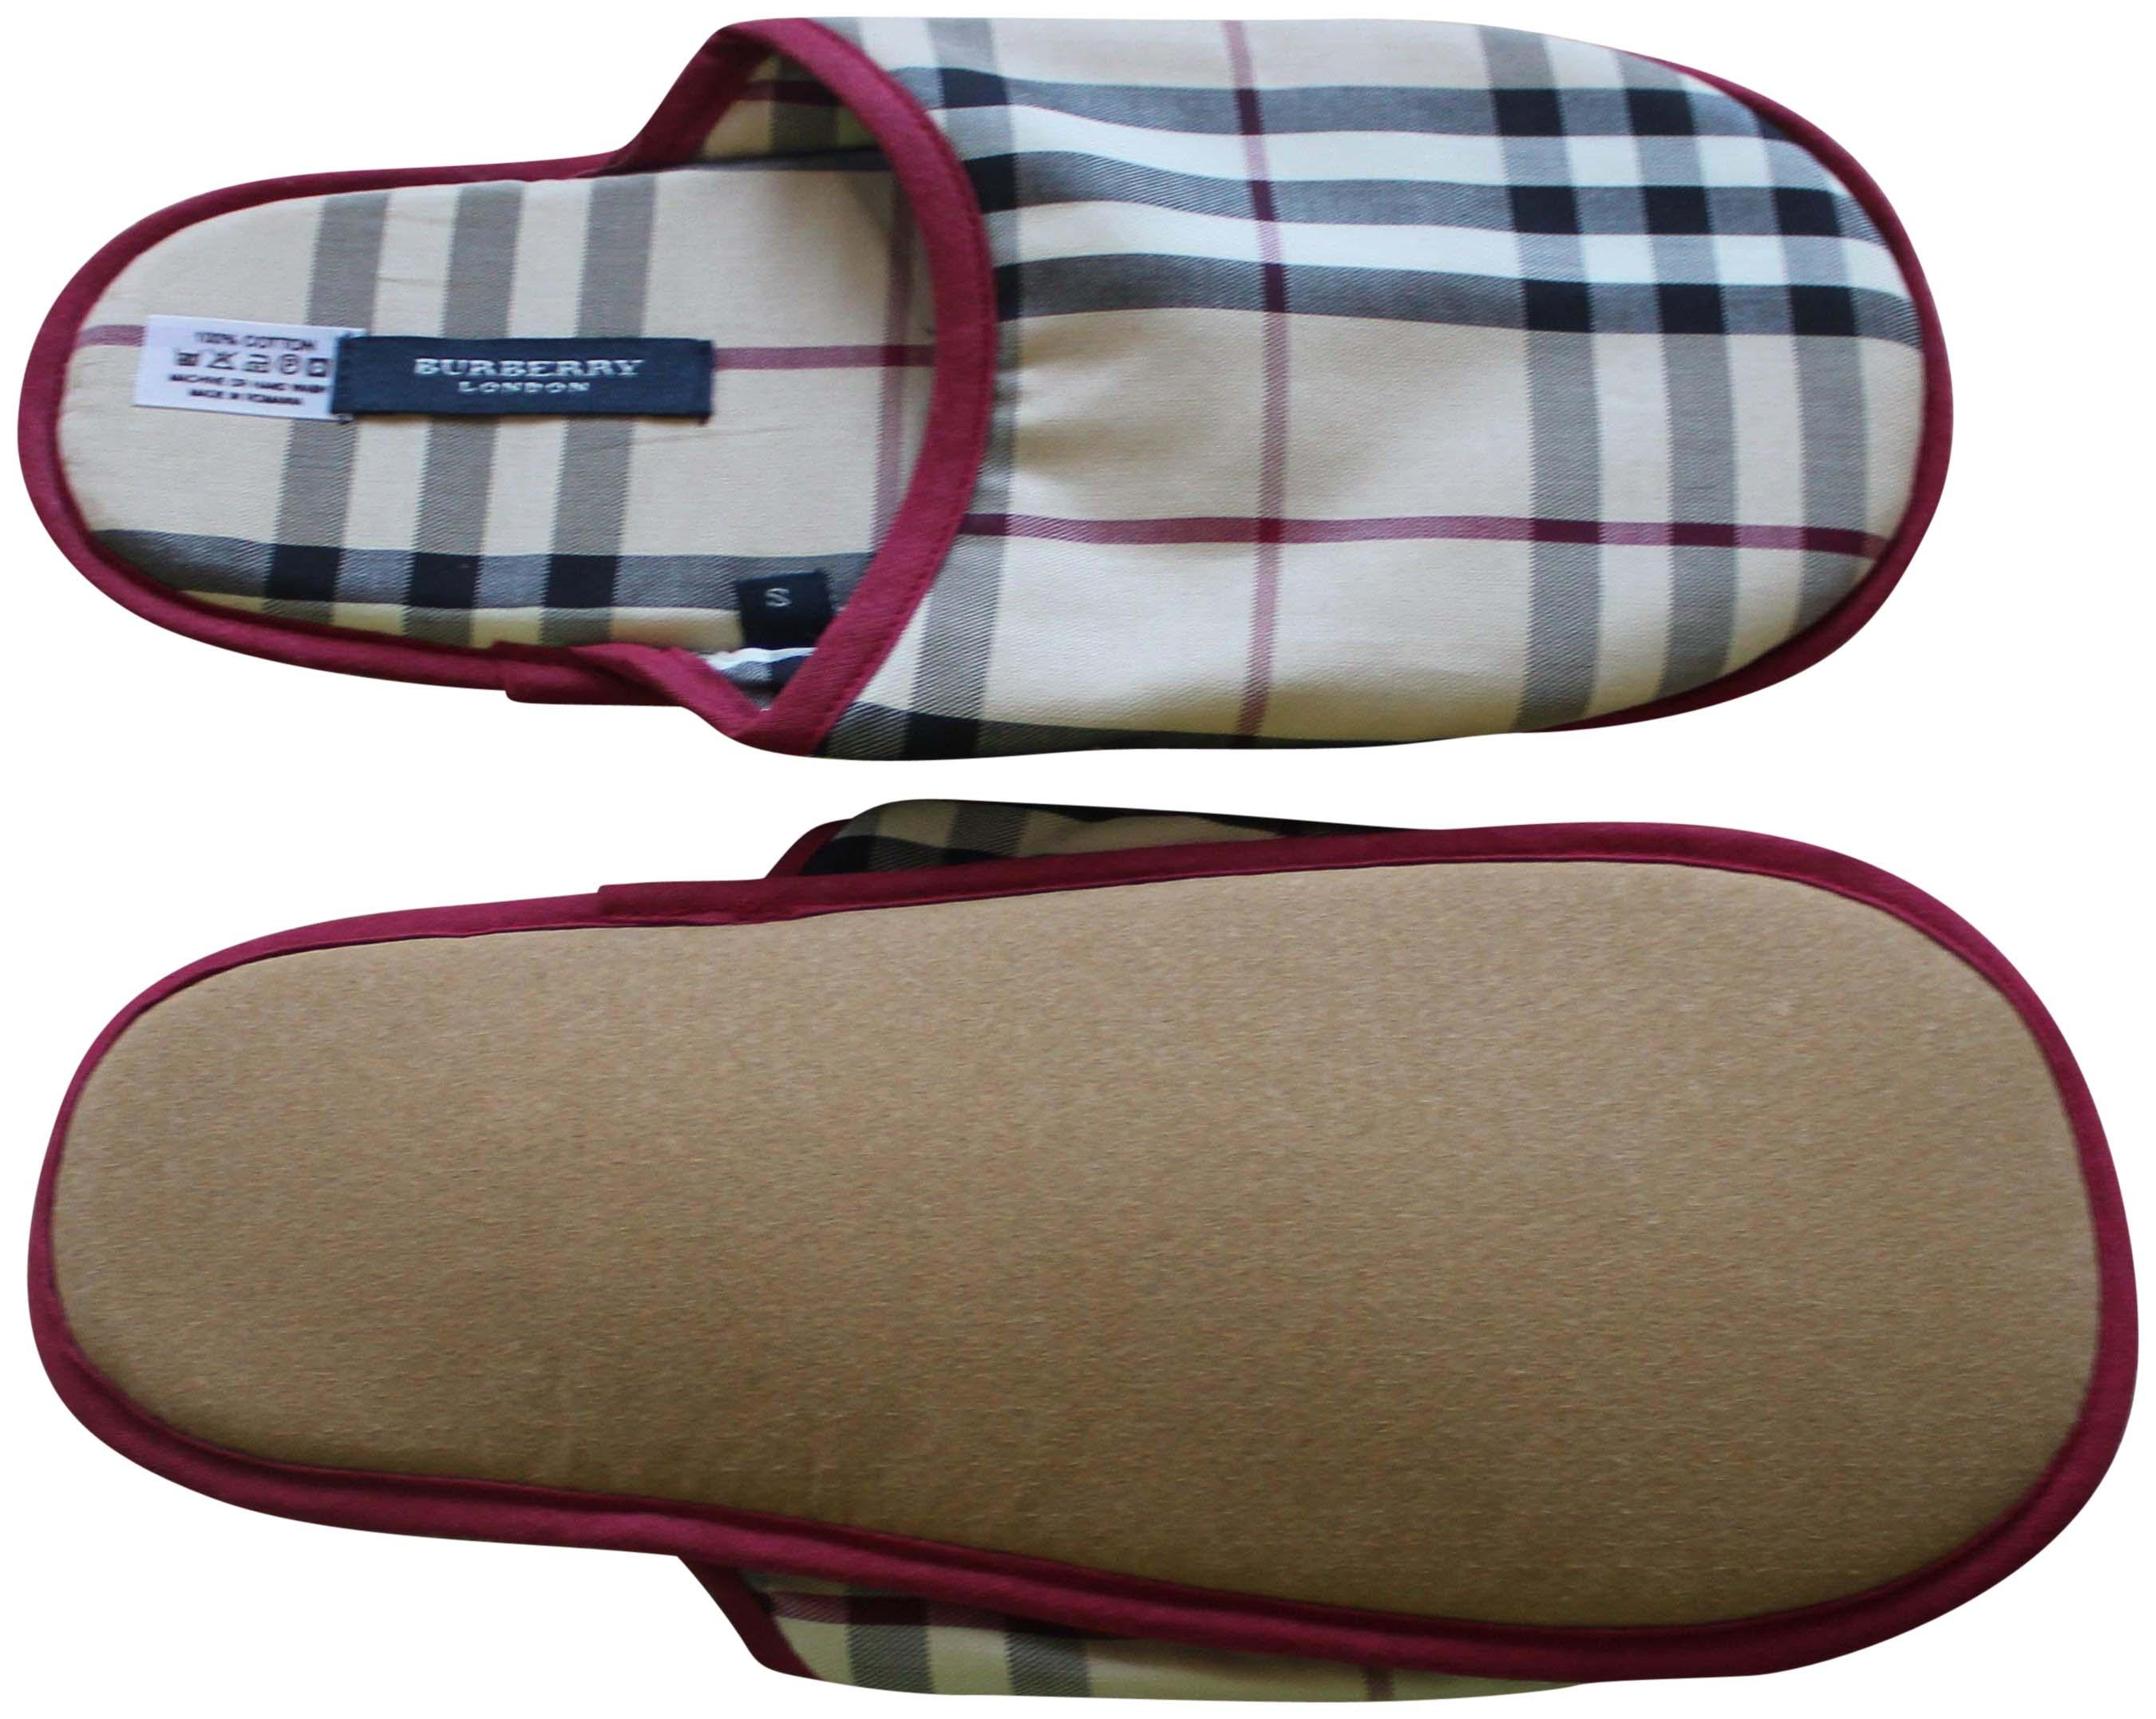 Burberry Nova Check Round-Toe Slippers outlet 2014 newest free shipping best sale discount footlocker sale wholesale price cheap 2014 C0JbMJ